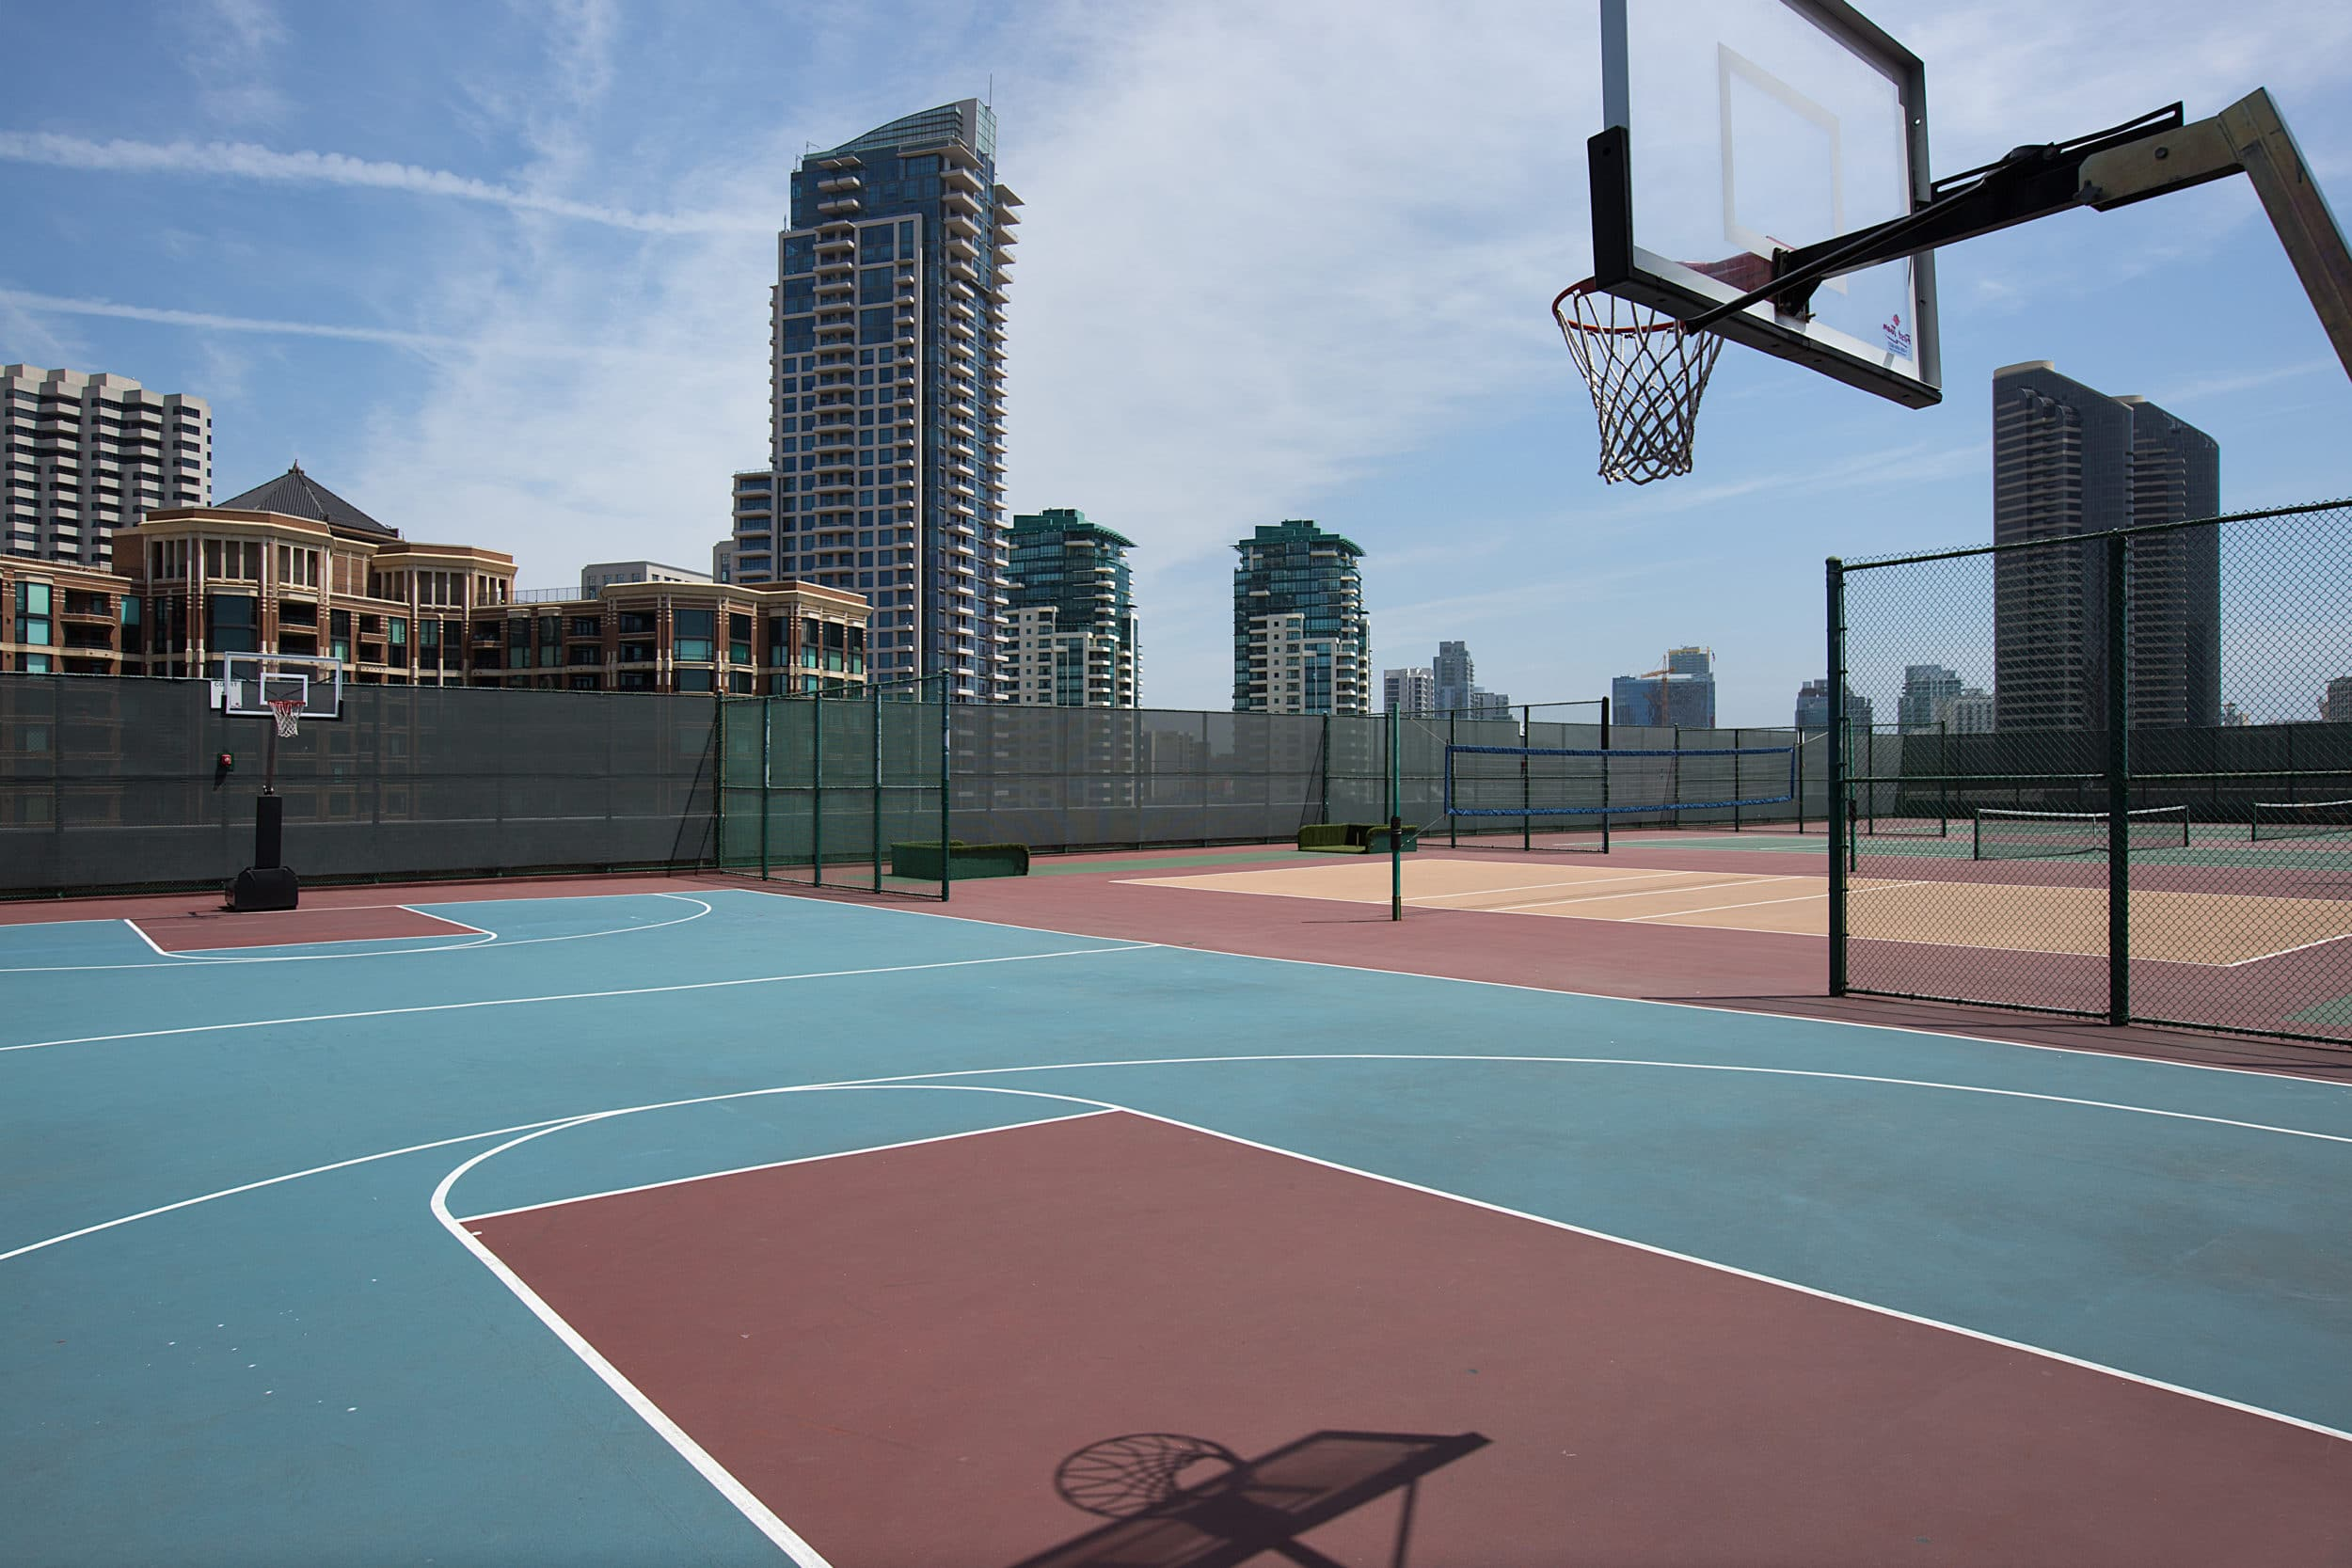 Manchester Grand Hyatt basketball court